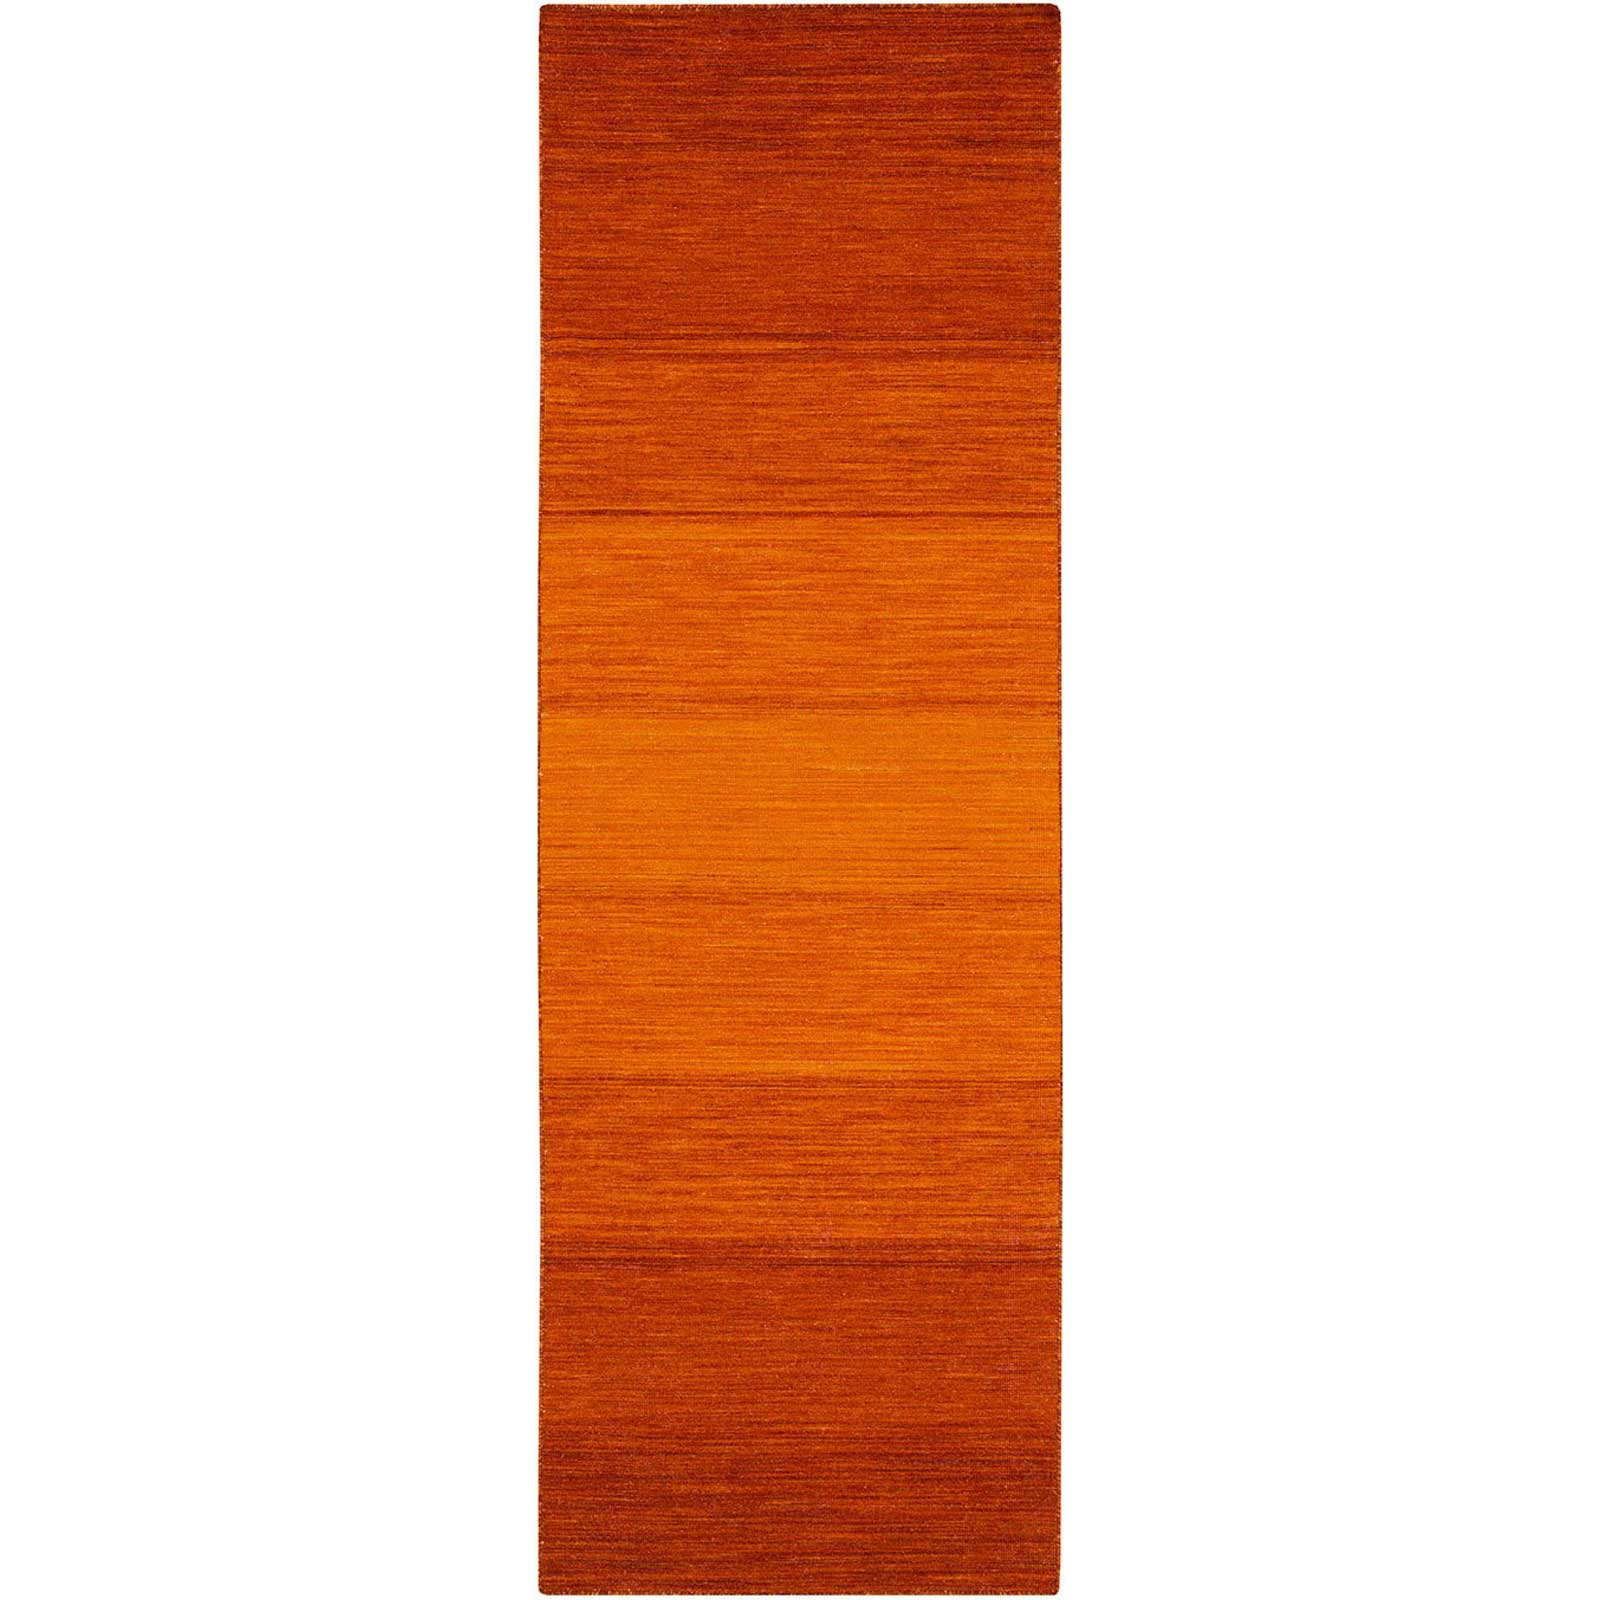 Chaz Tangerine/Burnt Orange Runner Rug